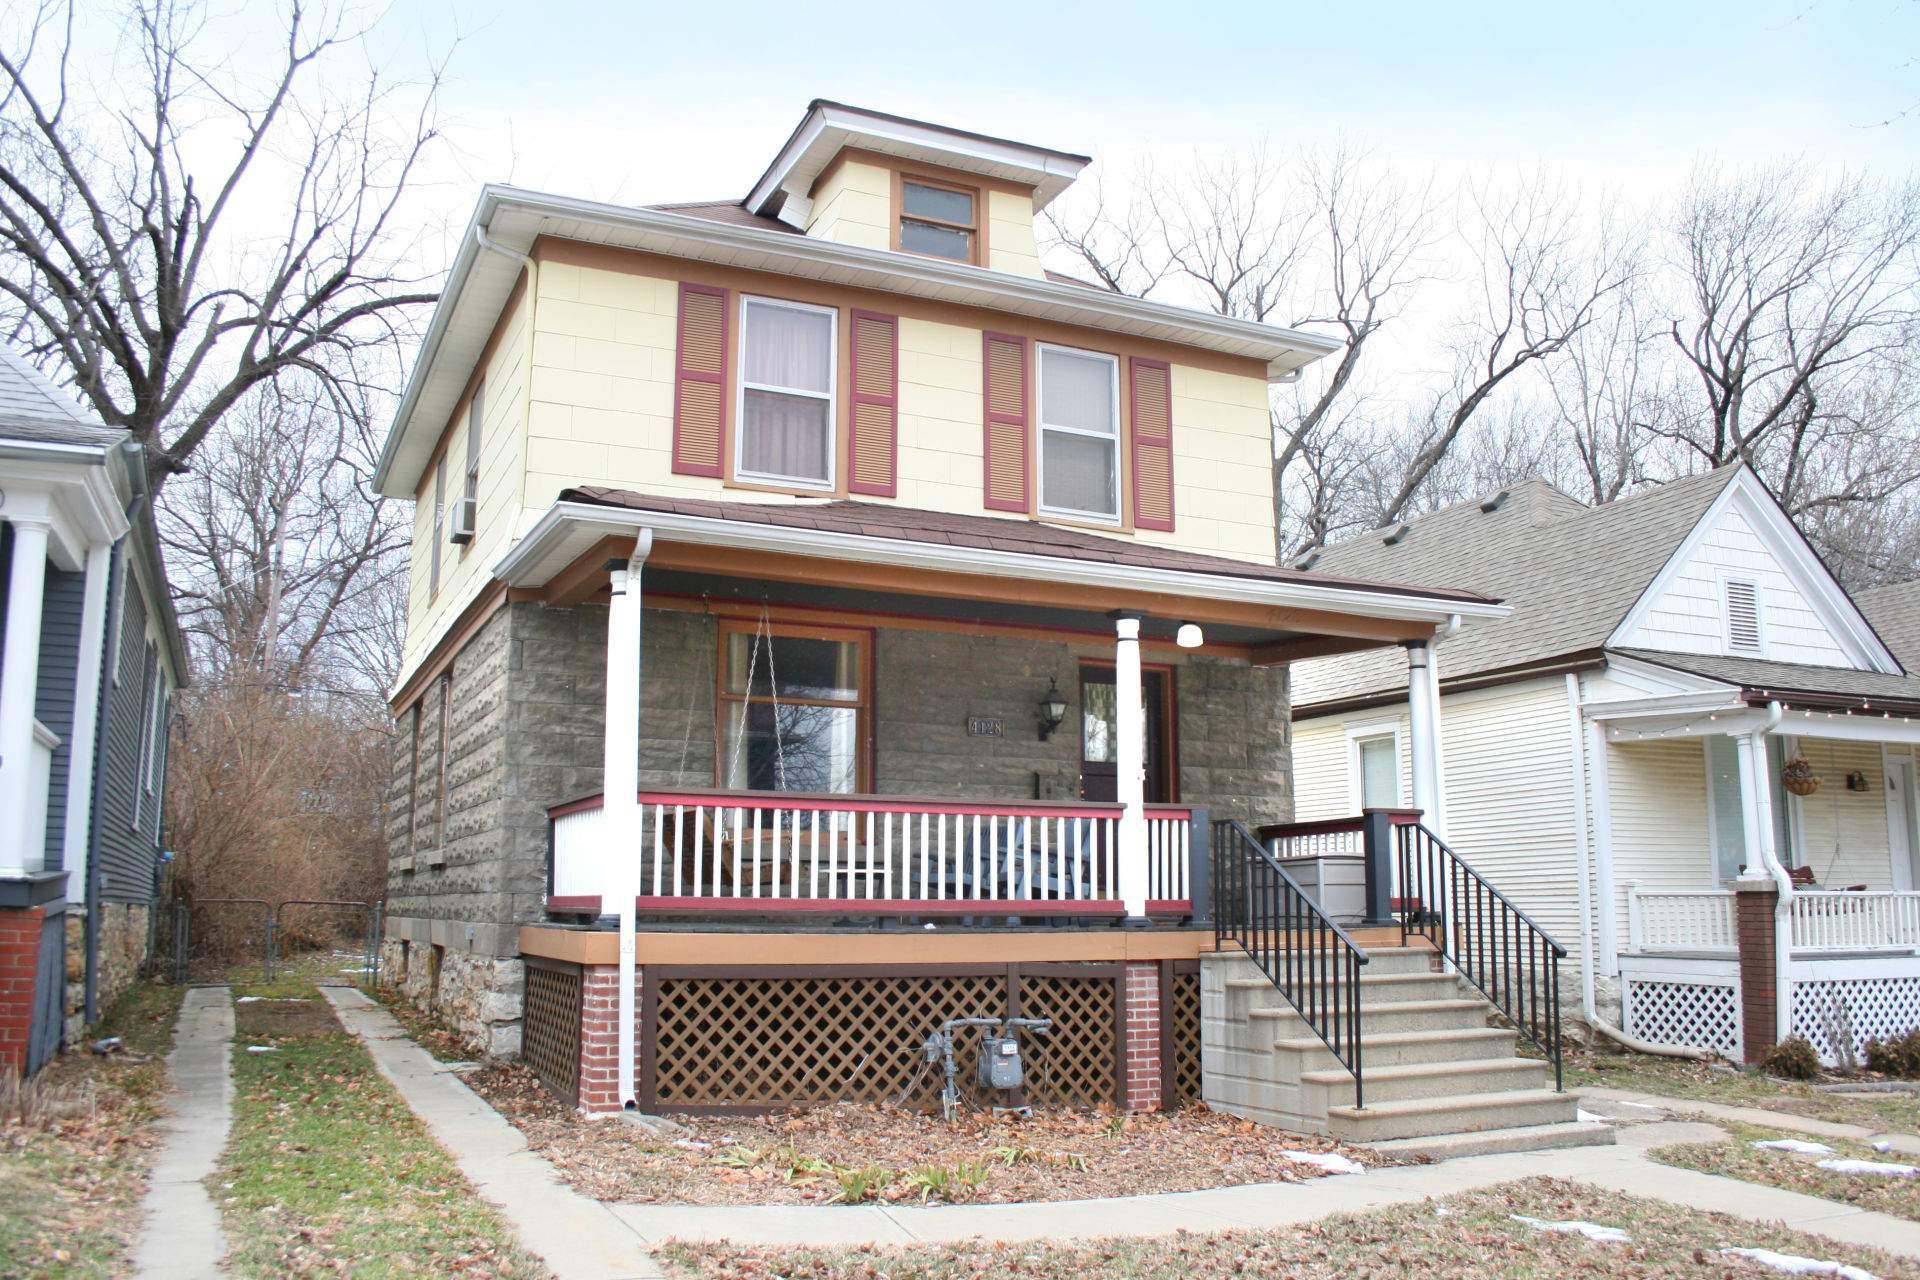 JUST LISTED with First OPEN HOUSE! Kansas City, MO